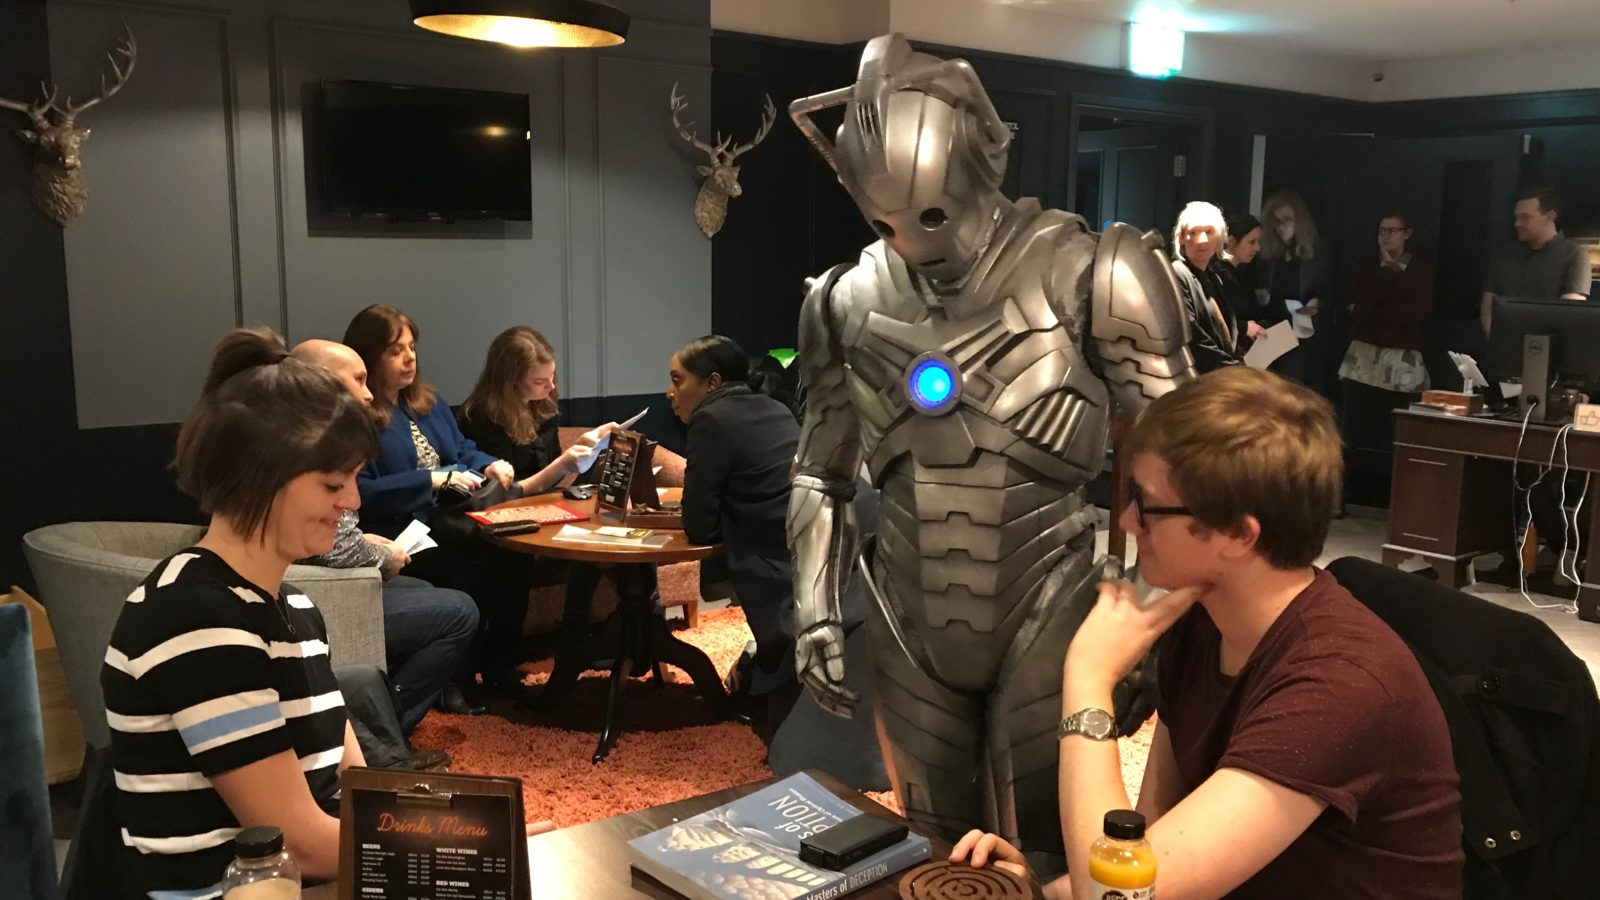 Doctor Who Escape Room Opens in Bristol UK